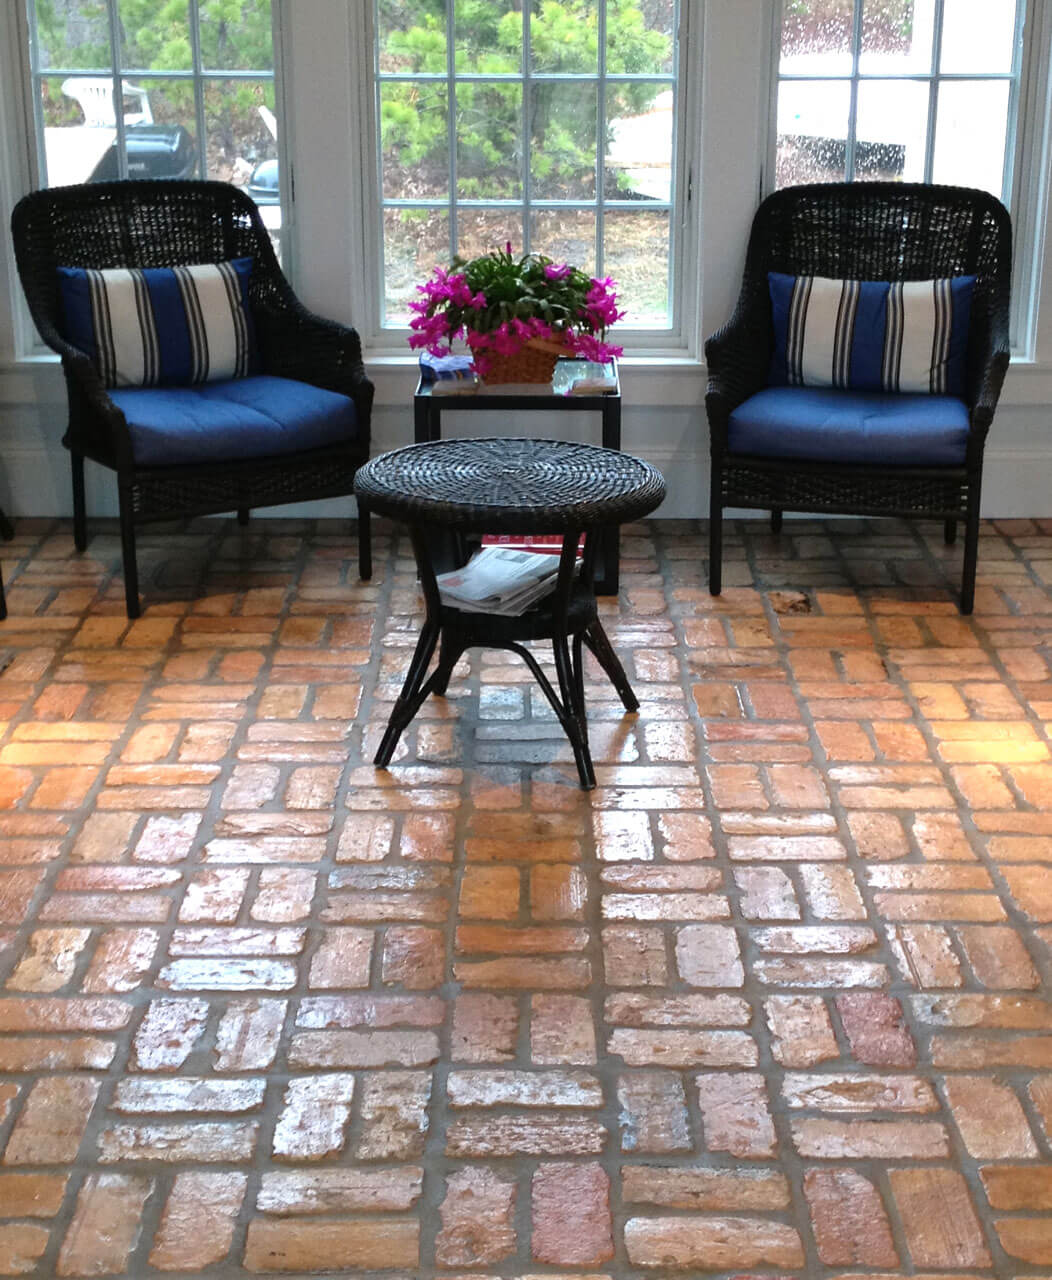 Reclaimed Brick Floor Porch